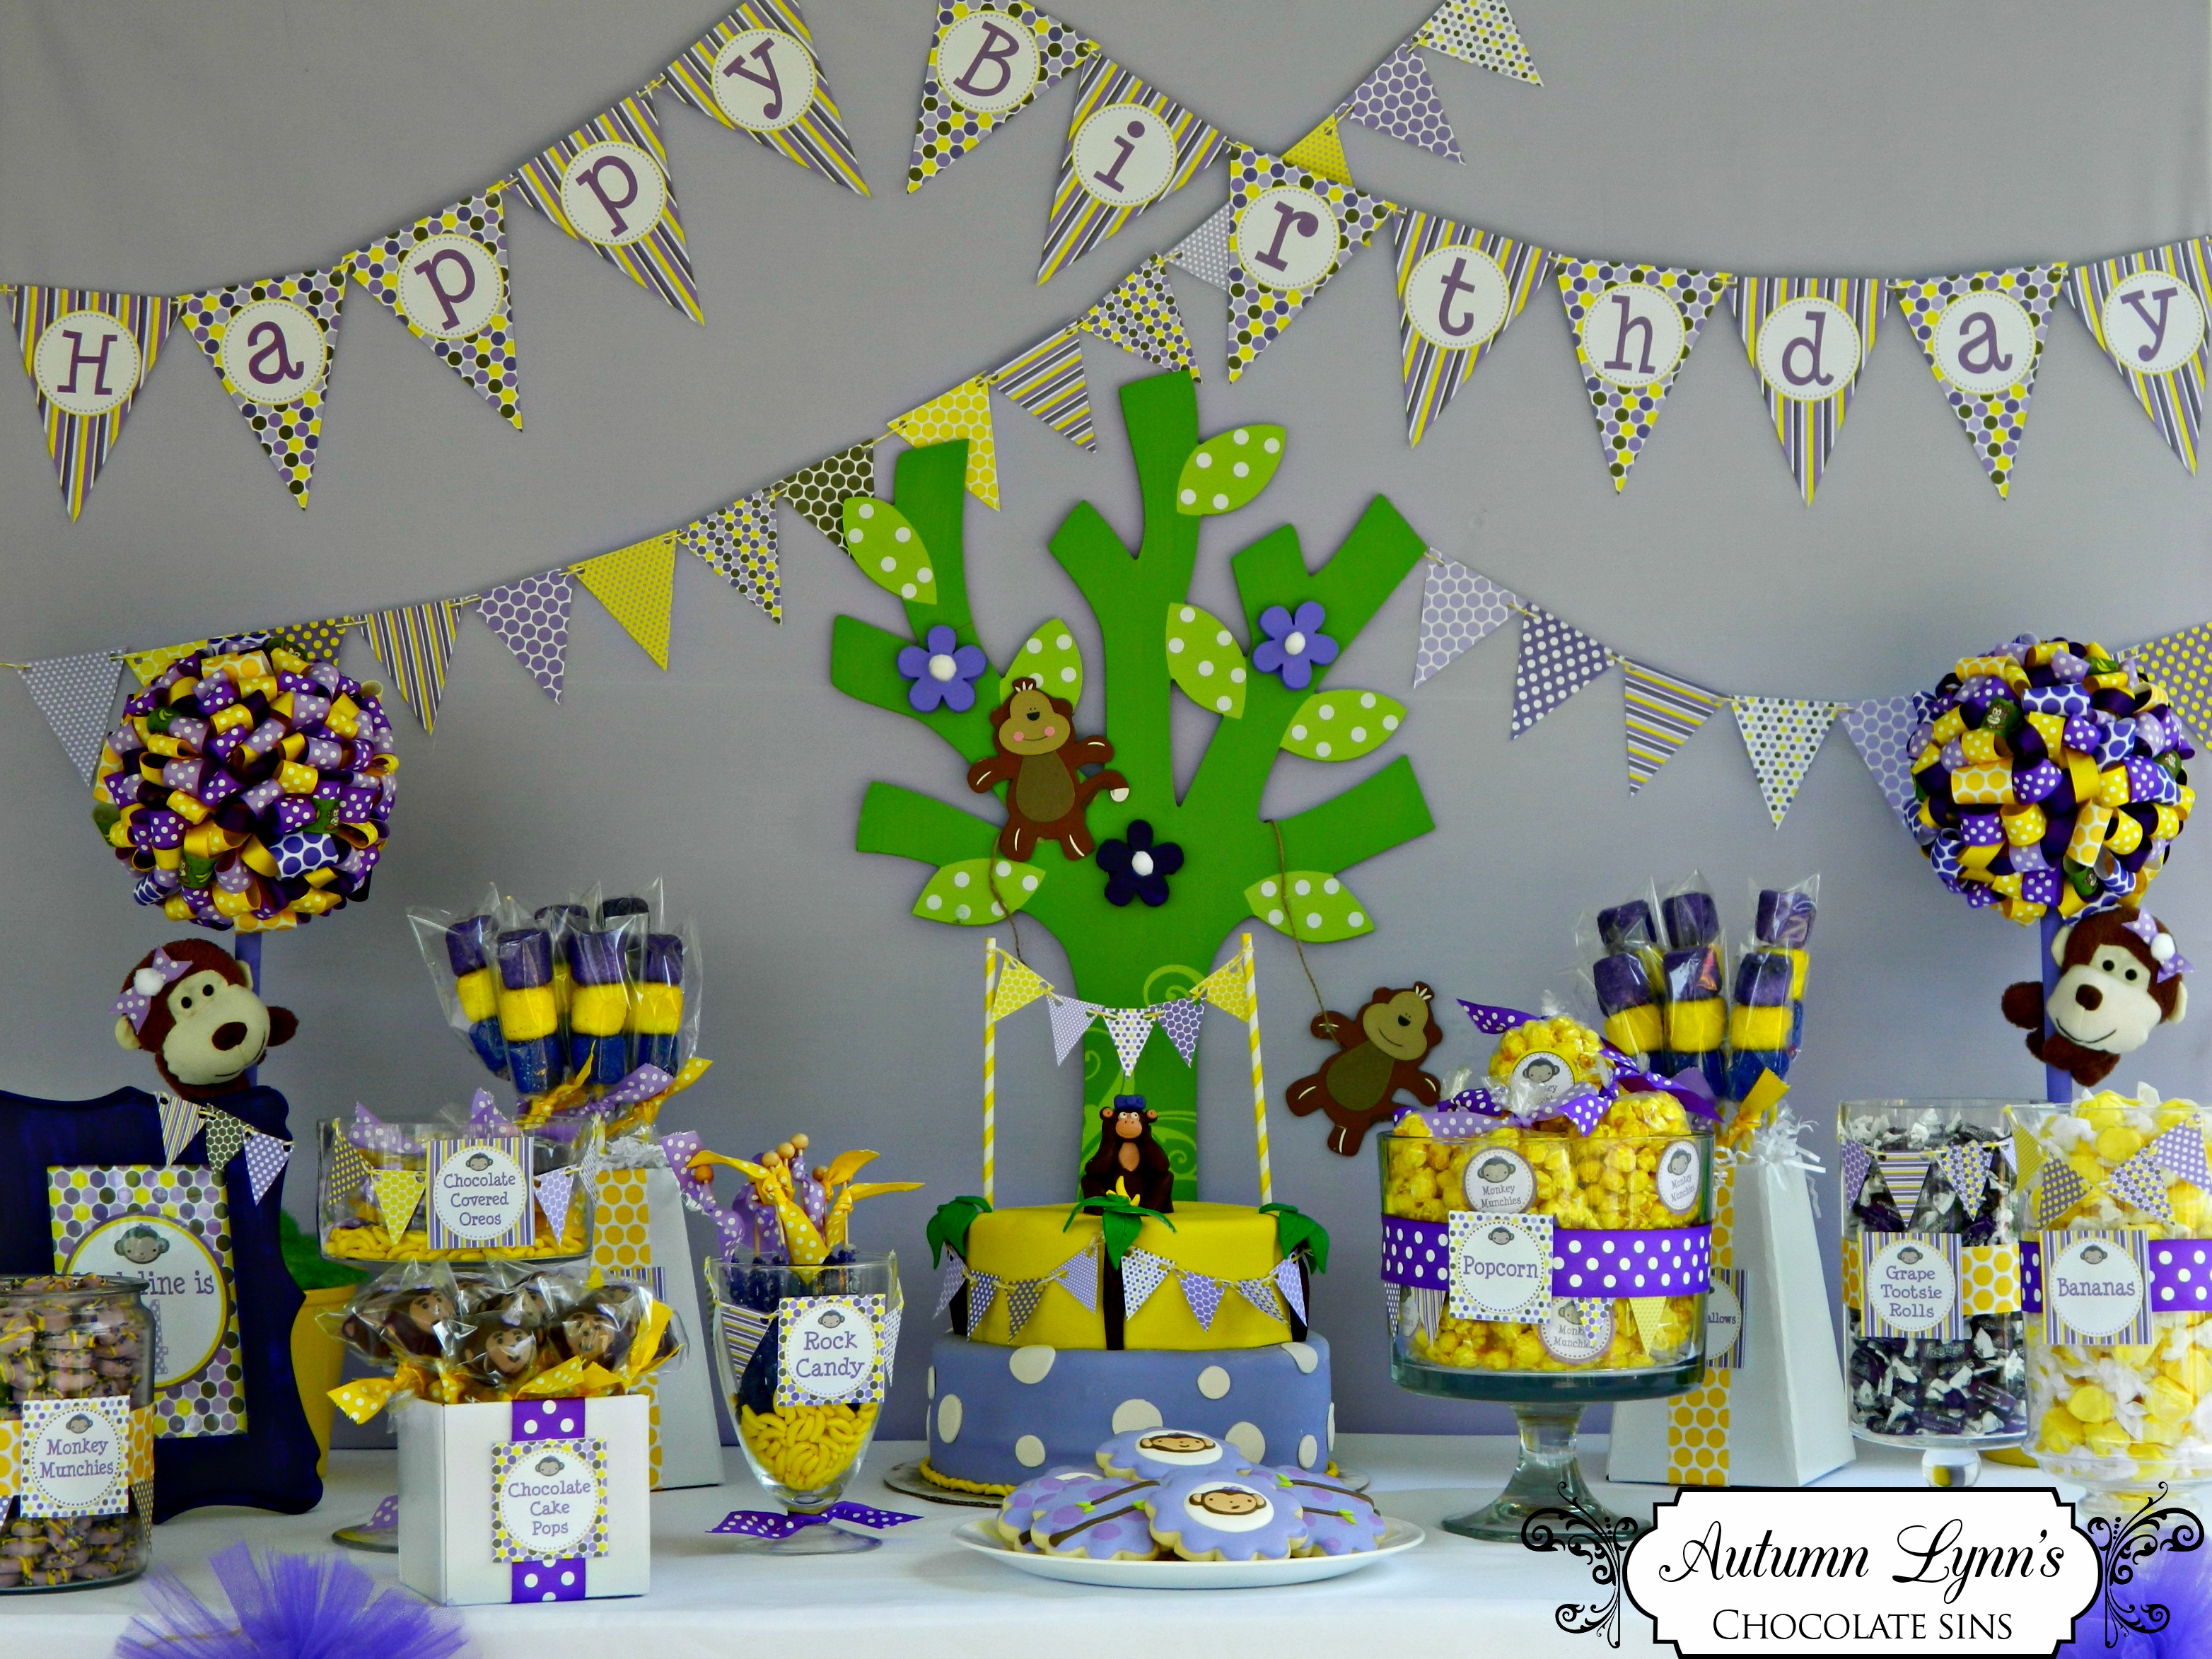 autumn from autumn lynn s chocolate sins created a darling purple yellow monkey party for her sweet niece who was turning 4 and loves monkeys and the